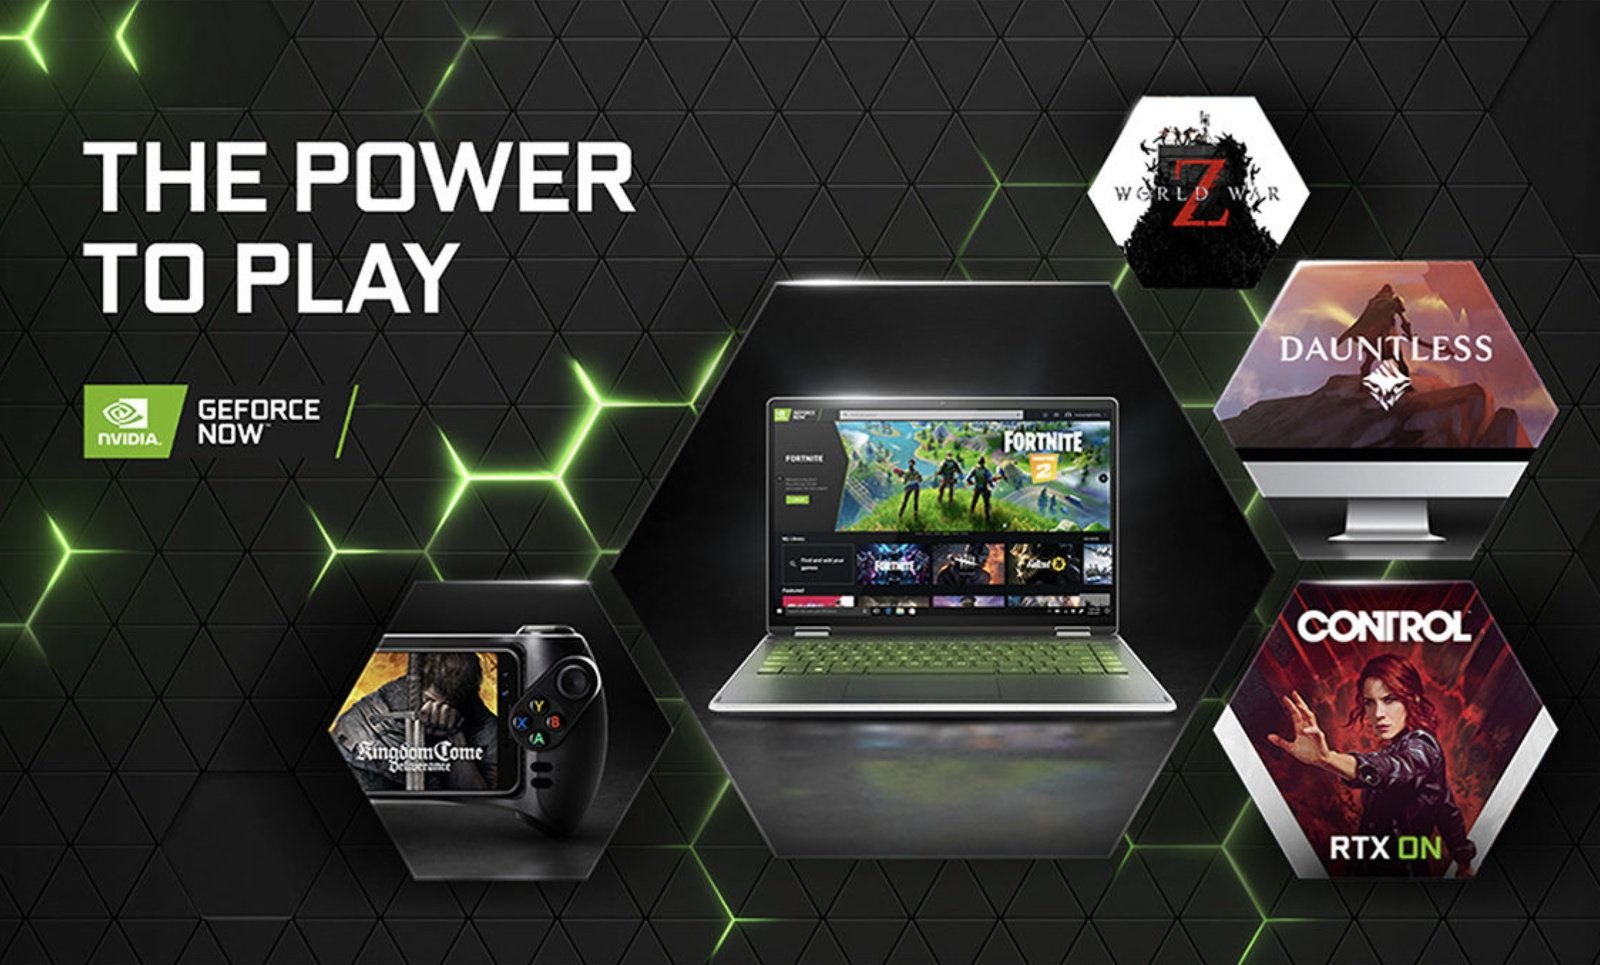 Nvidia GeForce Now adds Control and more games to streaming service